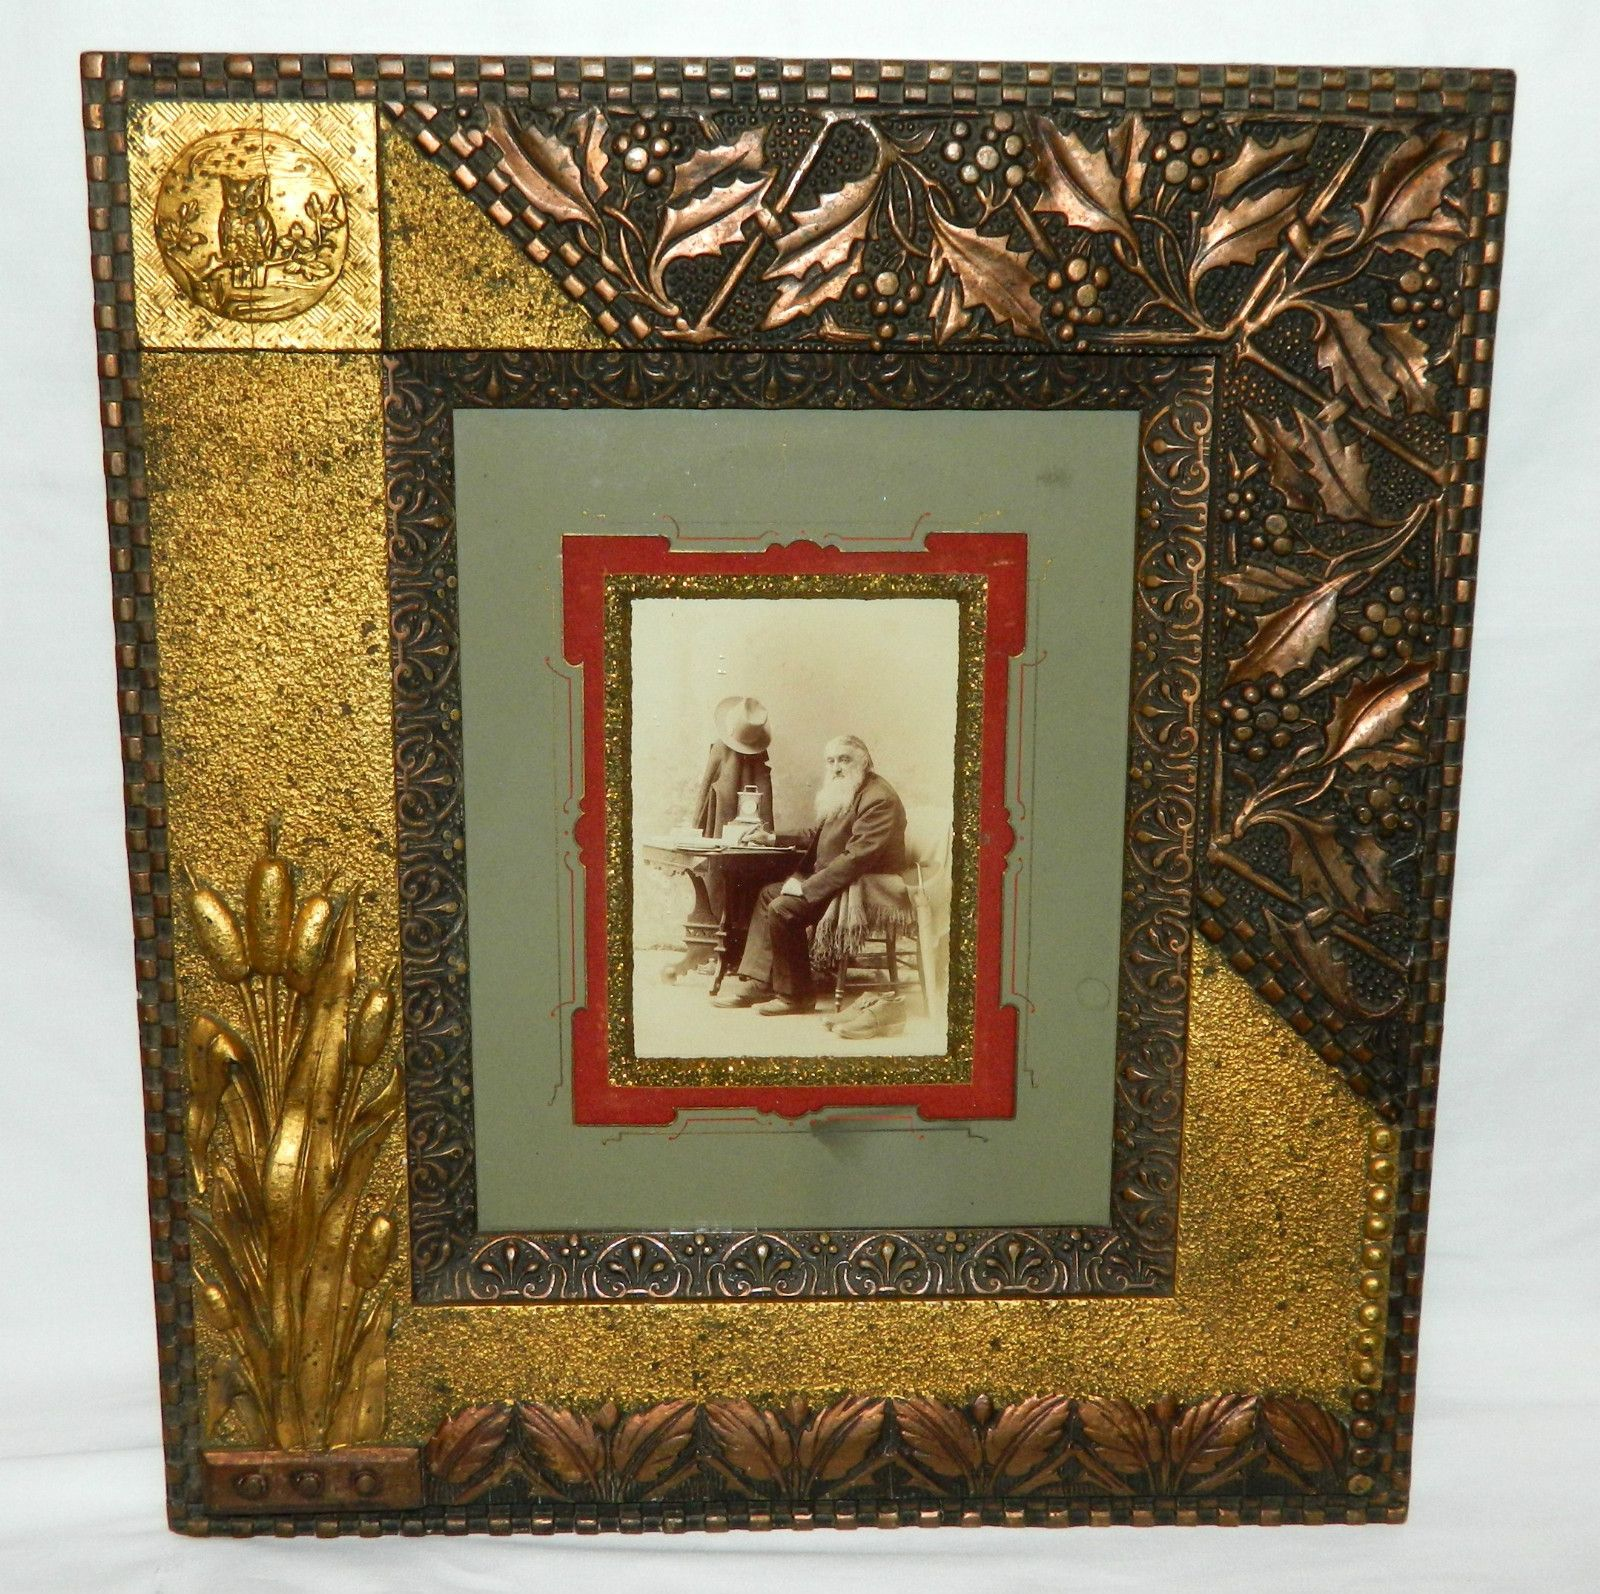 Aesthetic movement picture frame gold copper gilt owl holly aesthetic movement picture frame gold copper gilt owl holly bullrushes jeuxipadfo Gallery